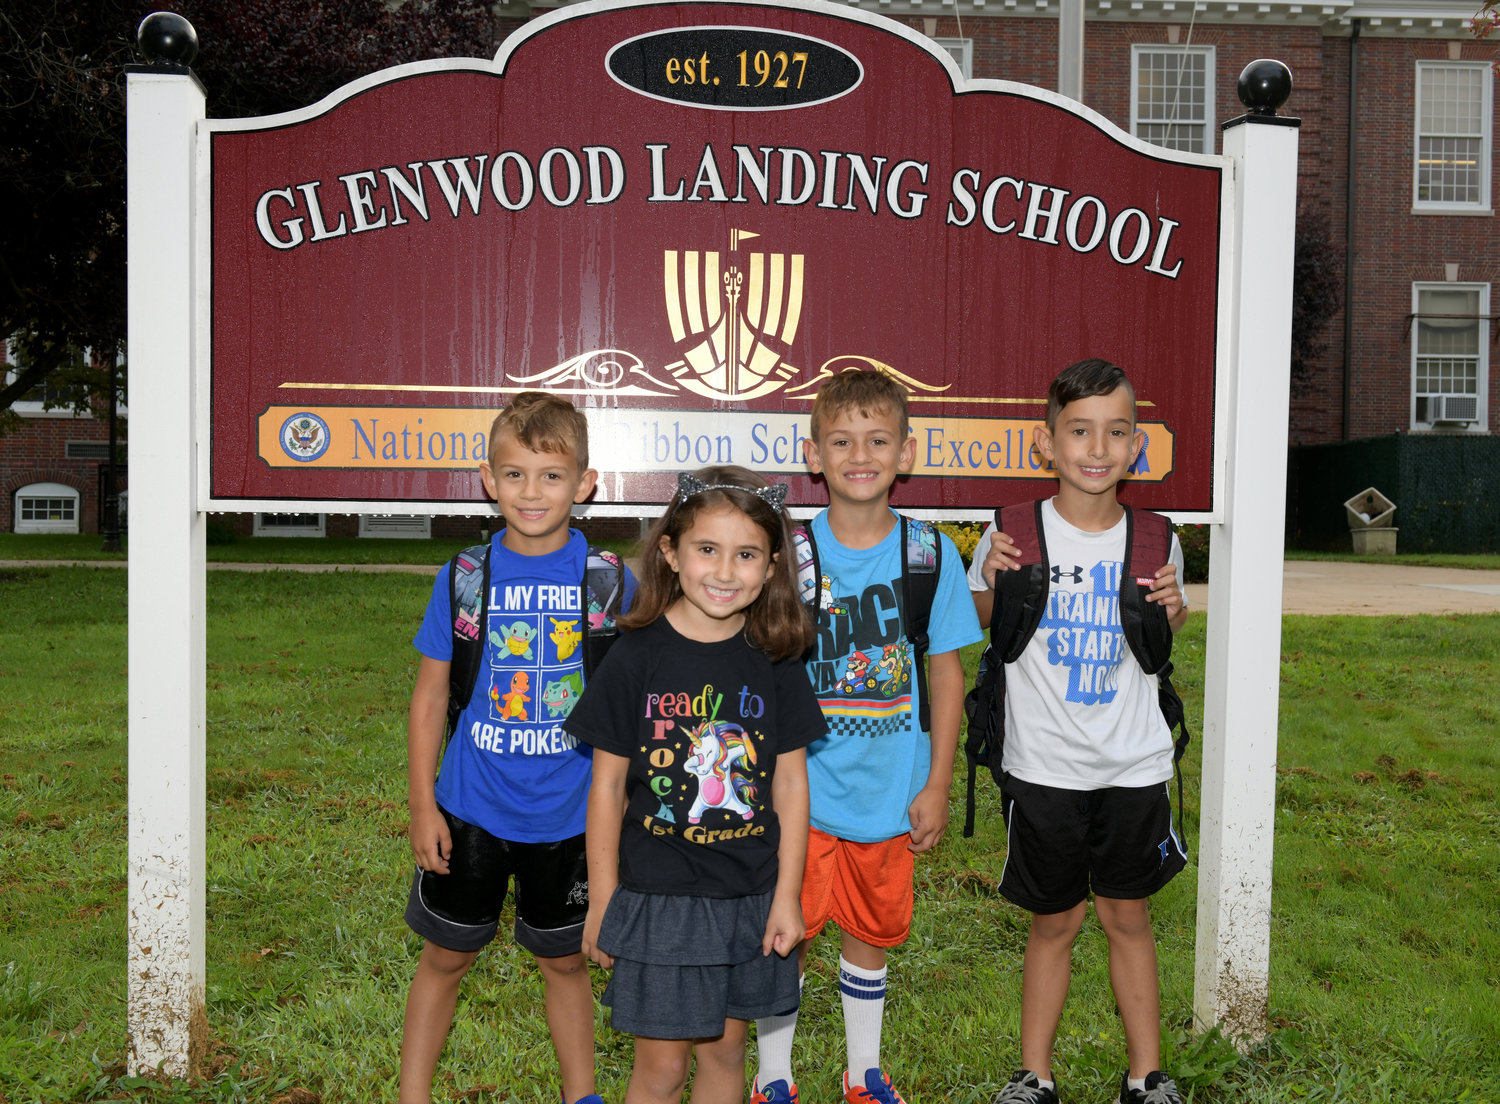 Joey, left and Riley Jerabek joined Christian and Nico Henley in the first day of school excitement.